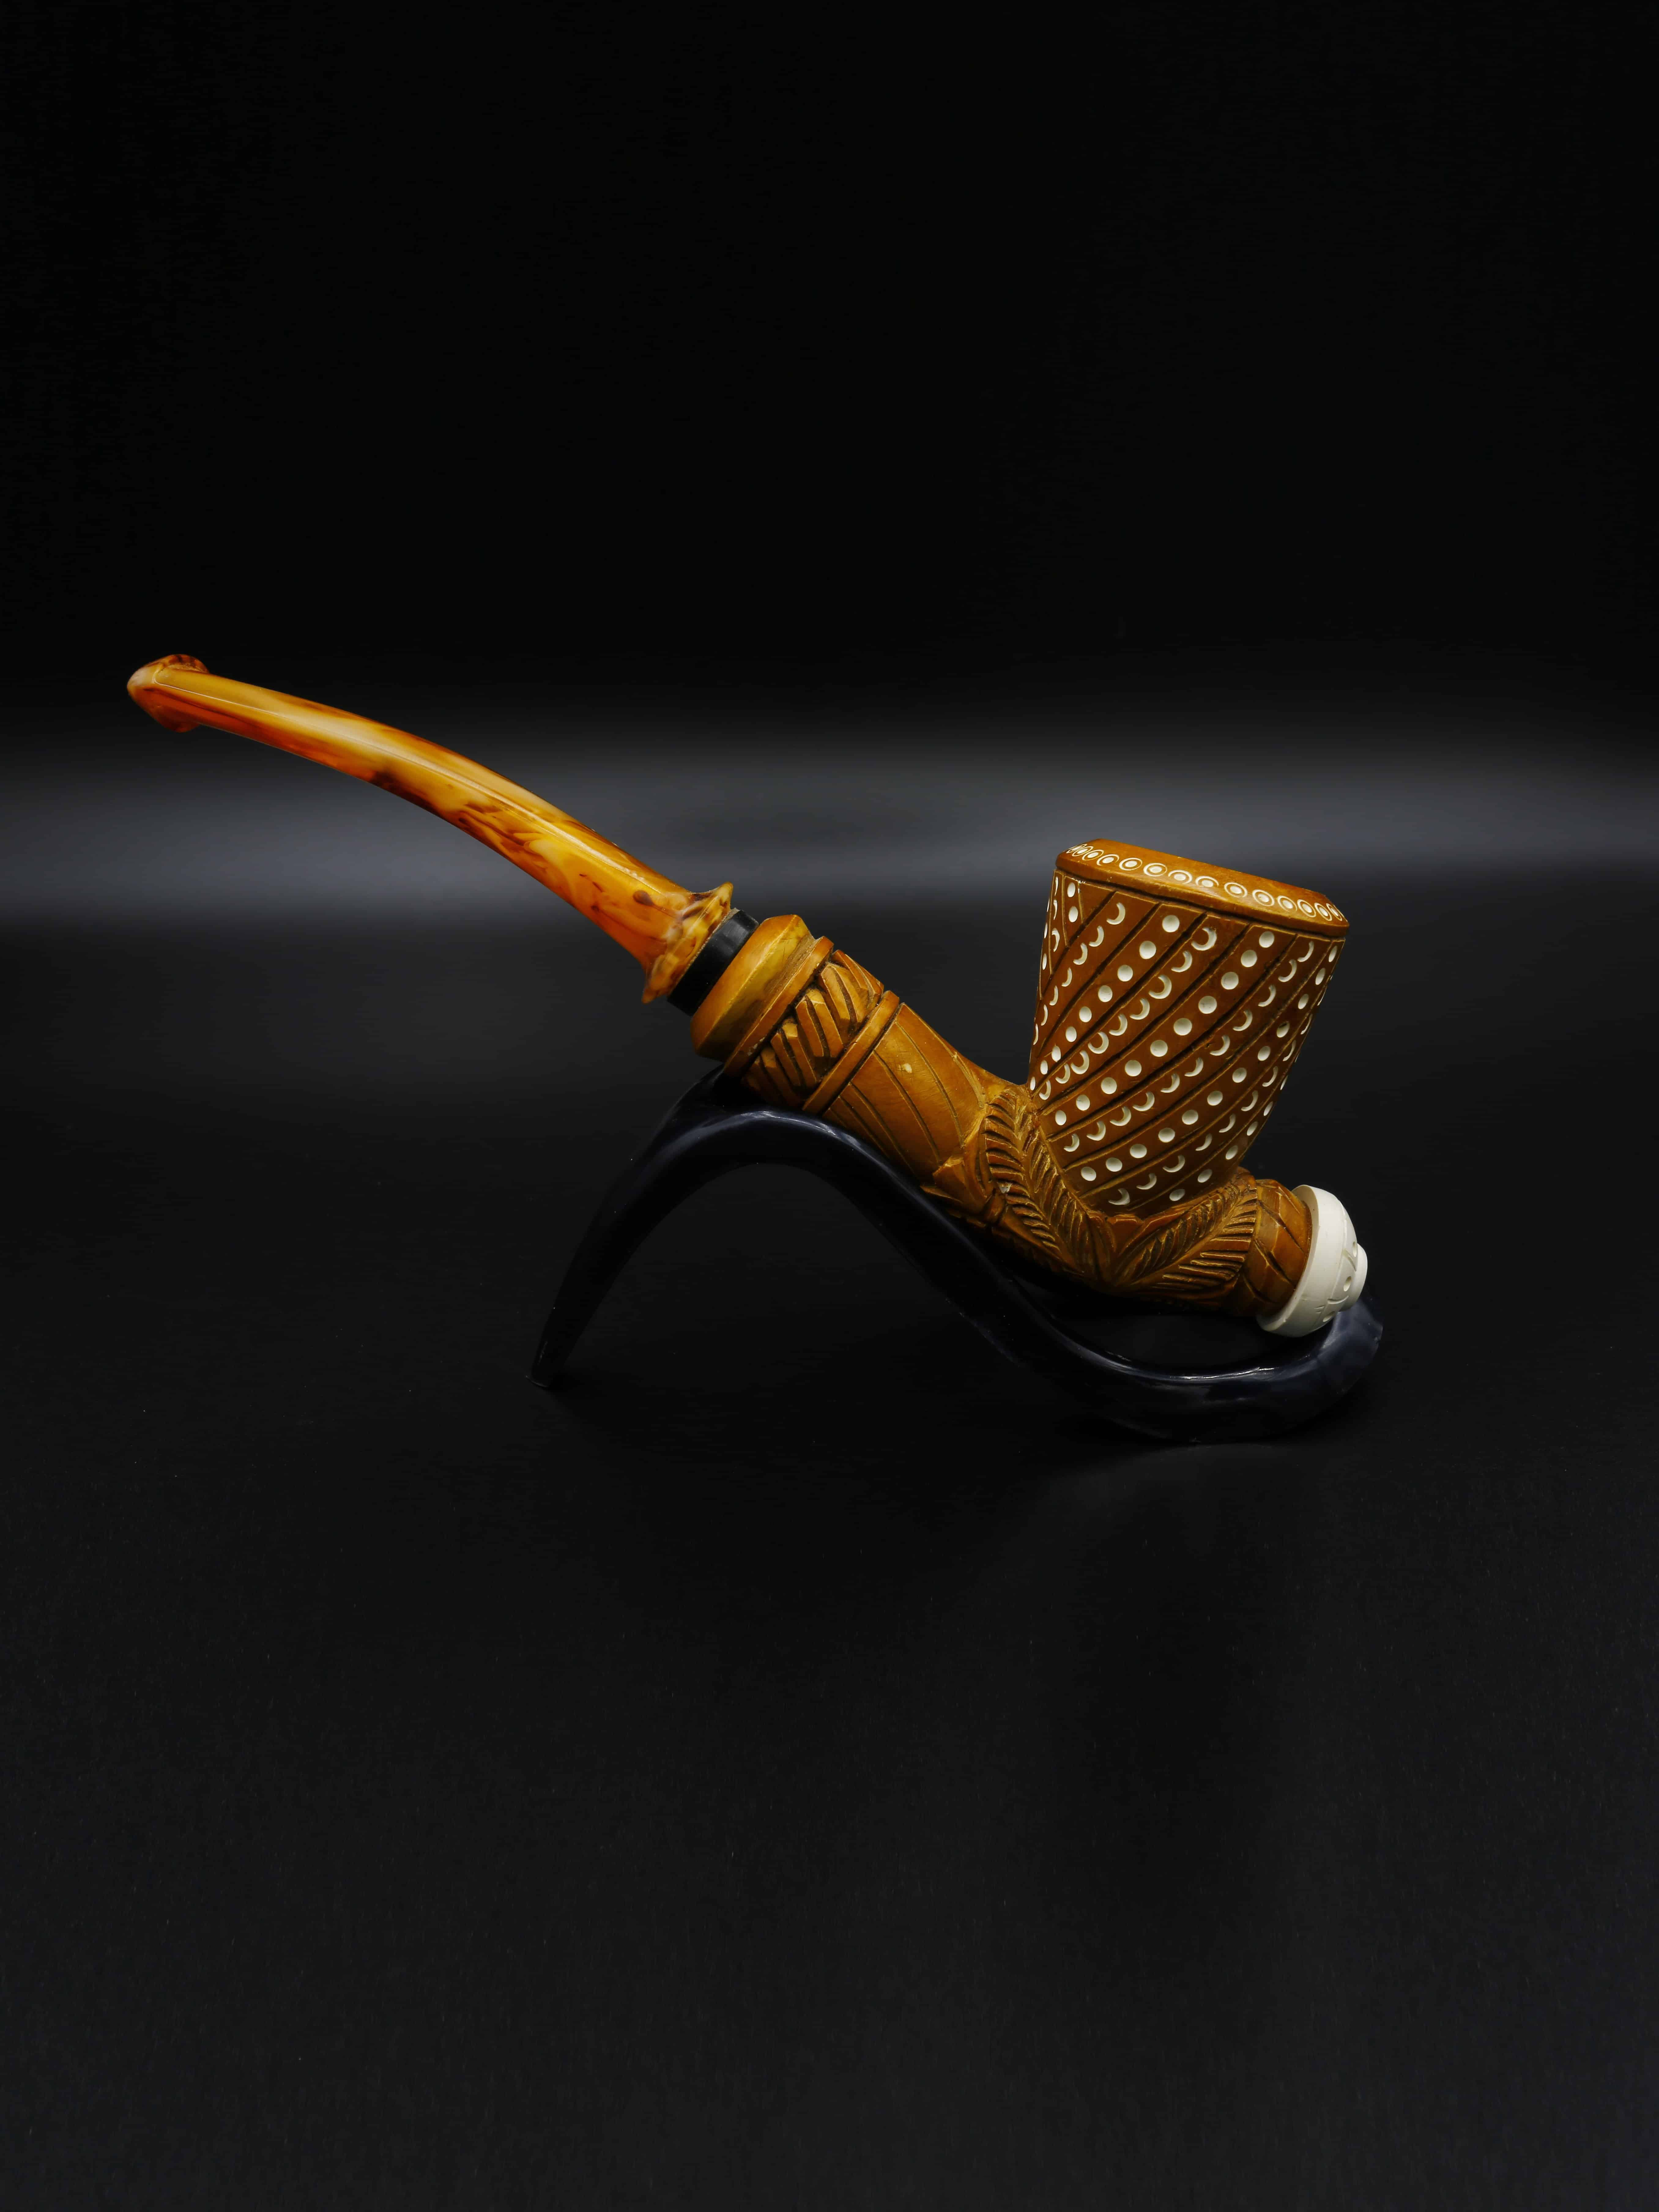 meerschaum pipe brown poker hand carved new 1 - Old Tradition: Meerschaum Pipes